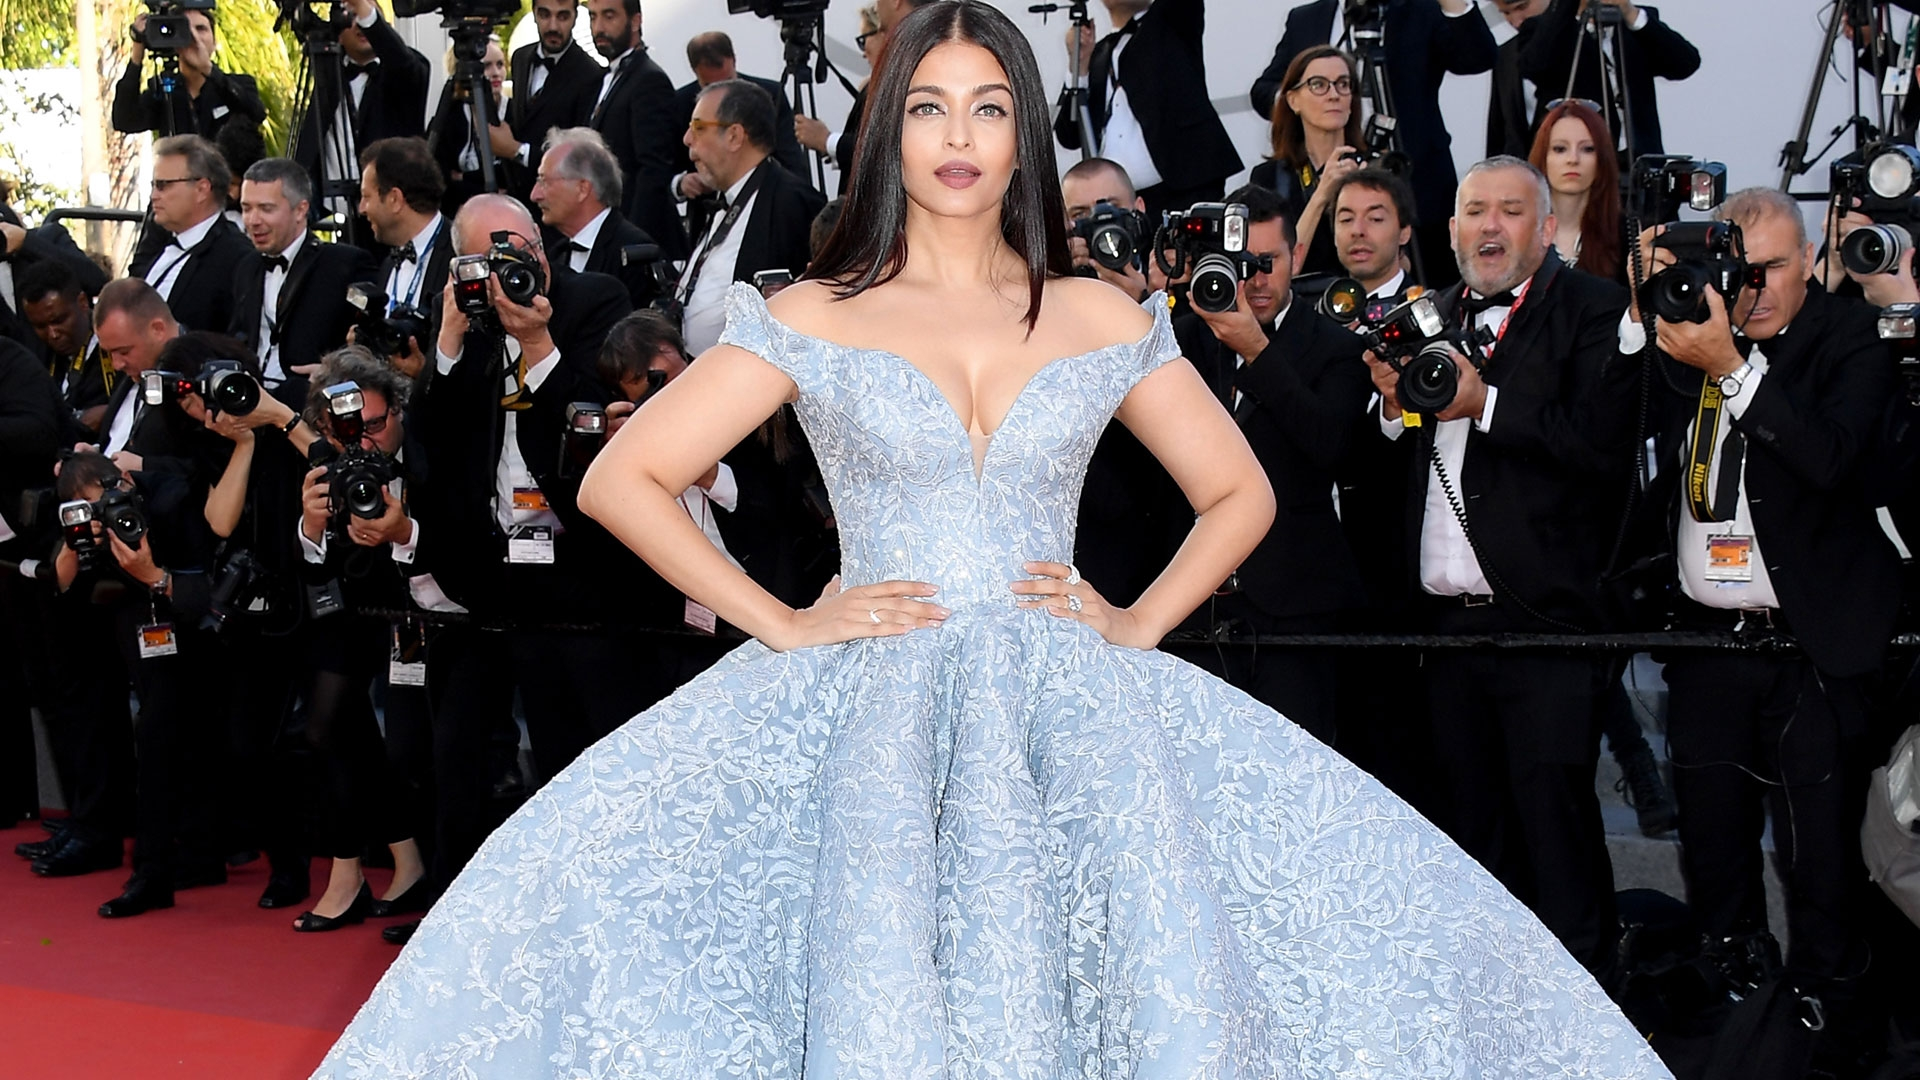 Ash looked resplendent on the red carpet at Cannes 2017